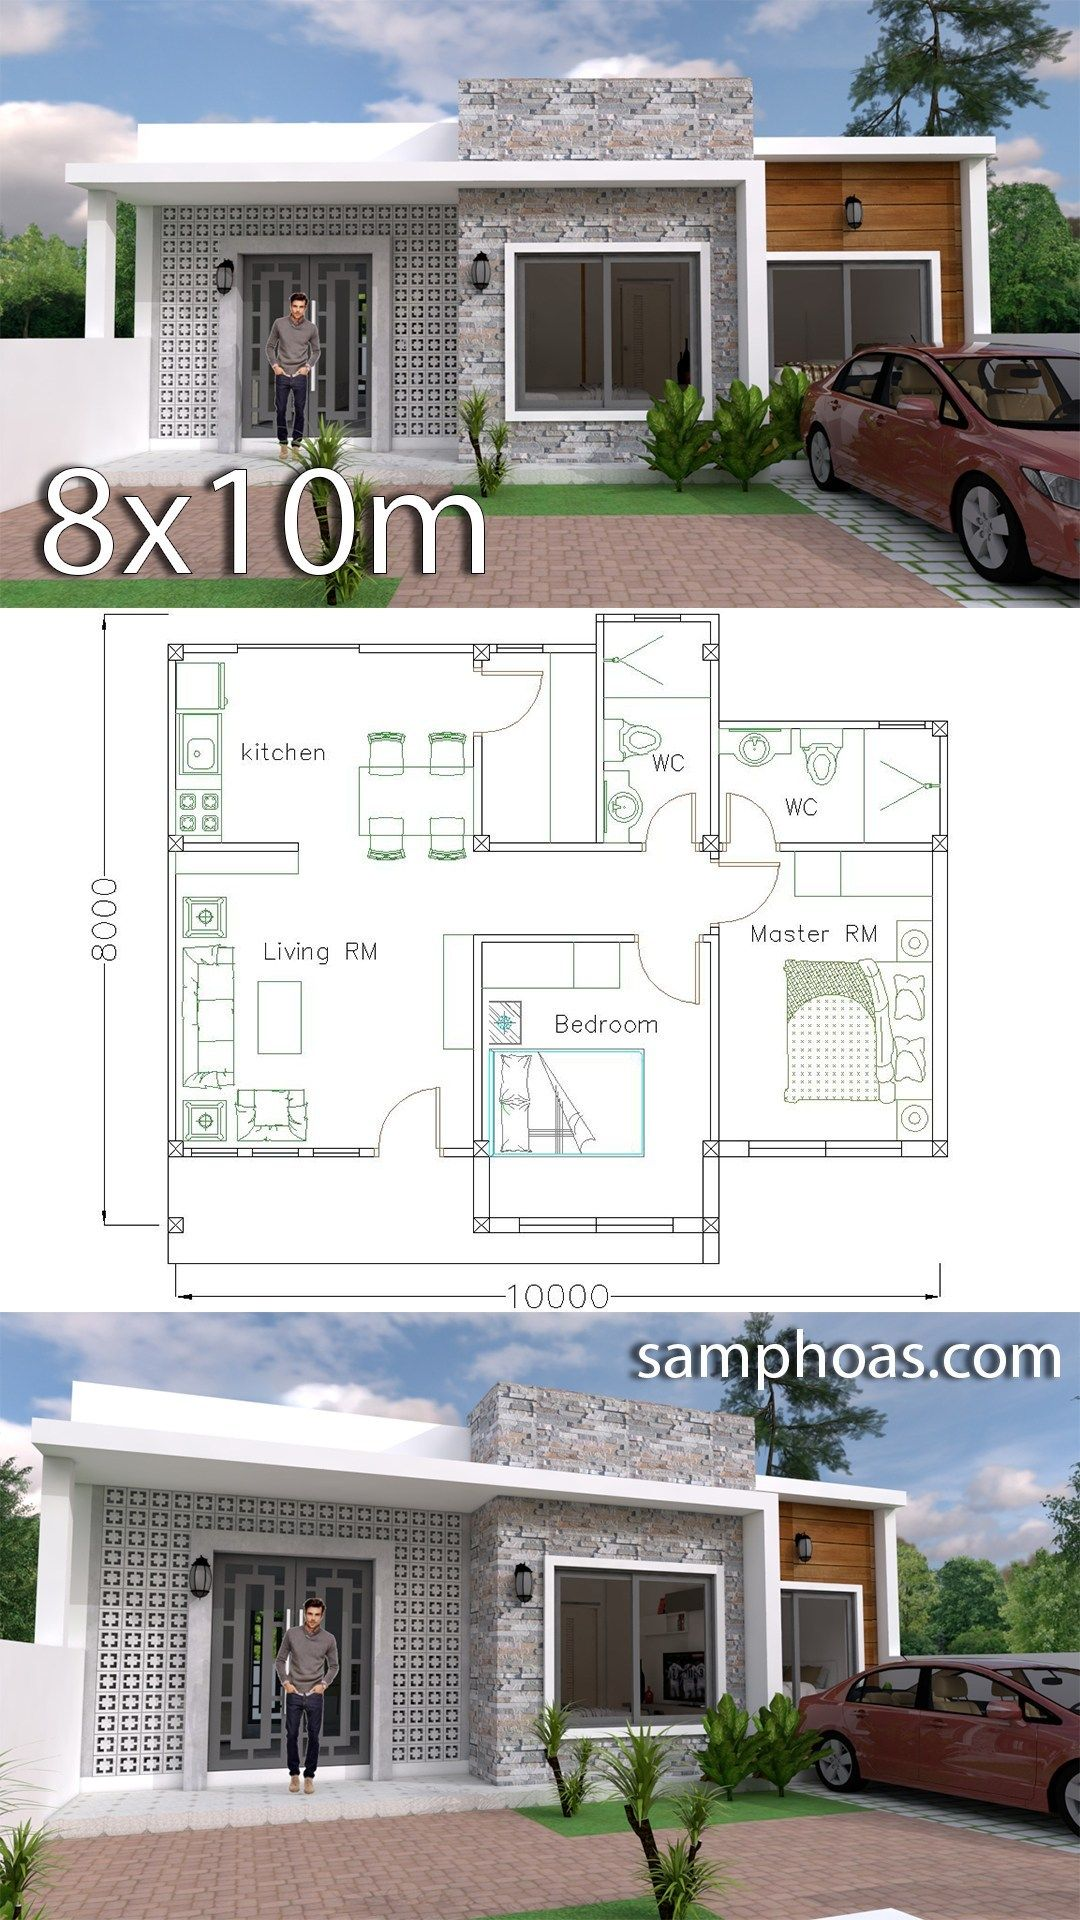 Simple Home Design Plan 10x8m With 2 Bedrooms Projetos De Casas